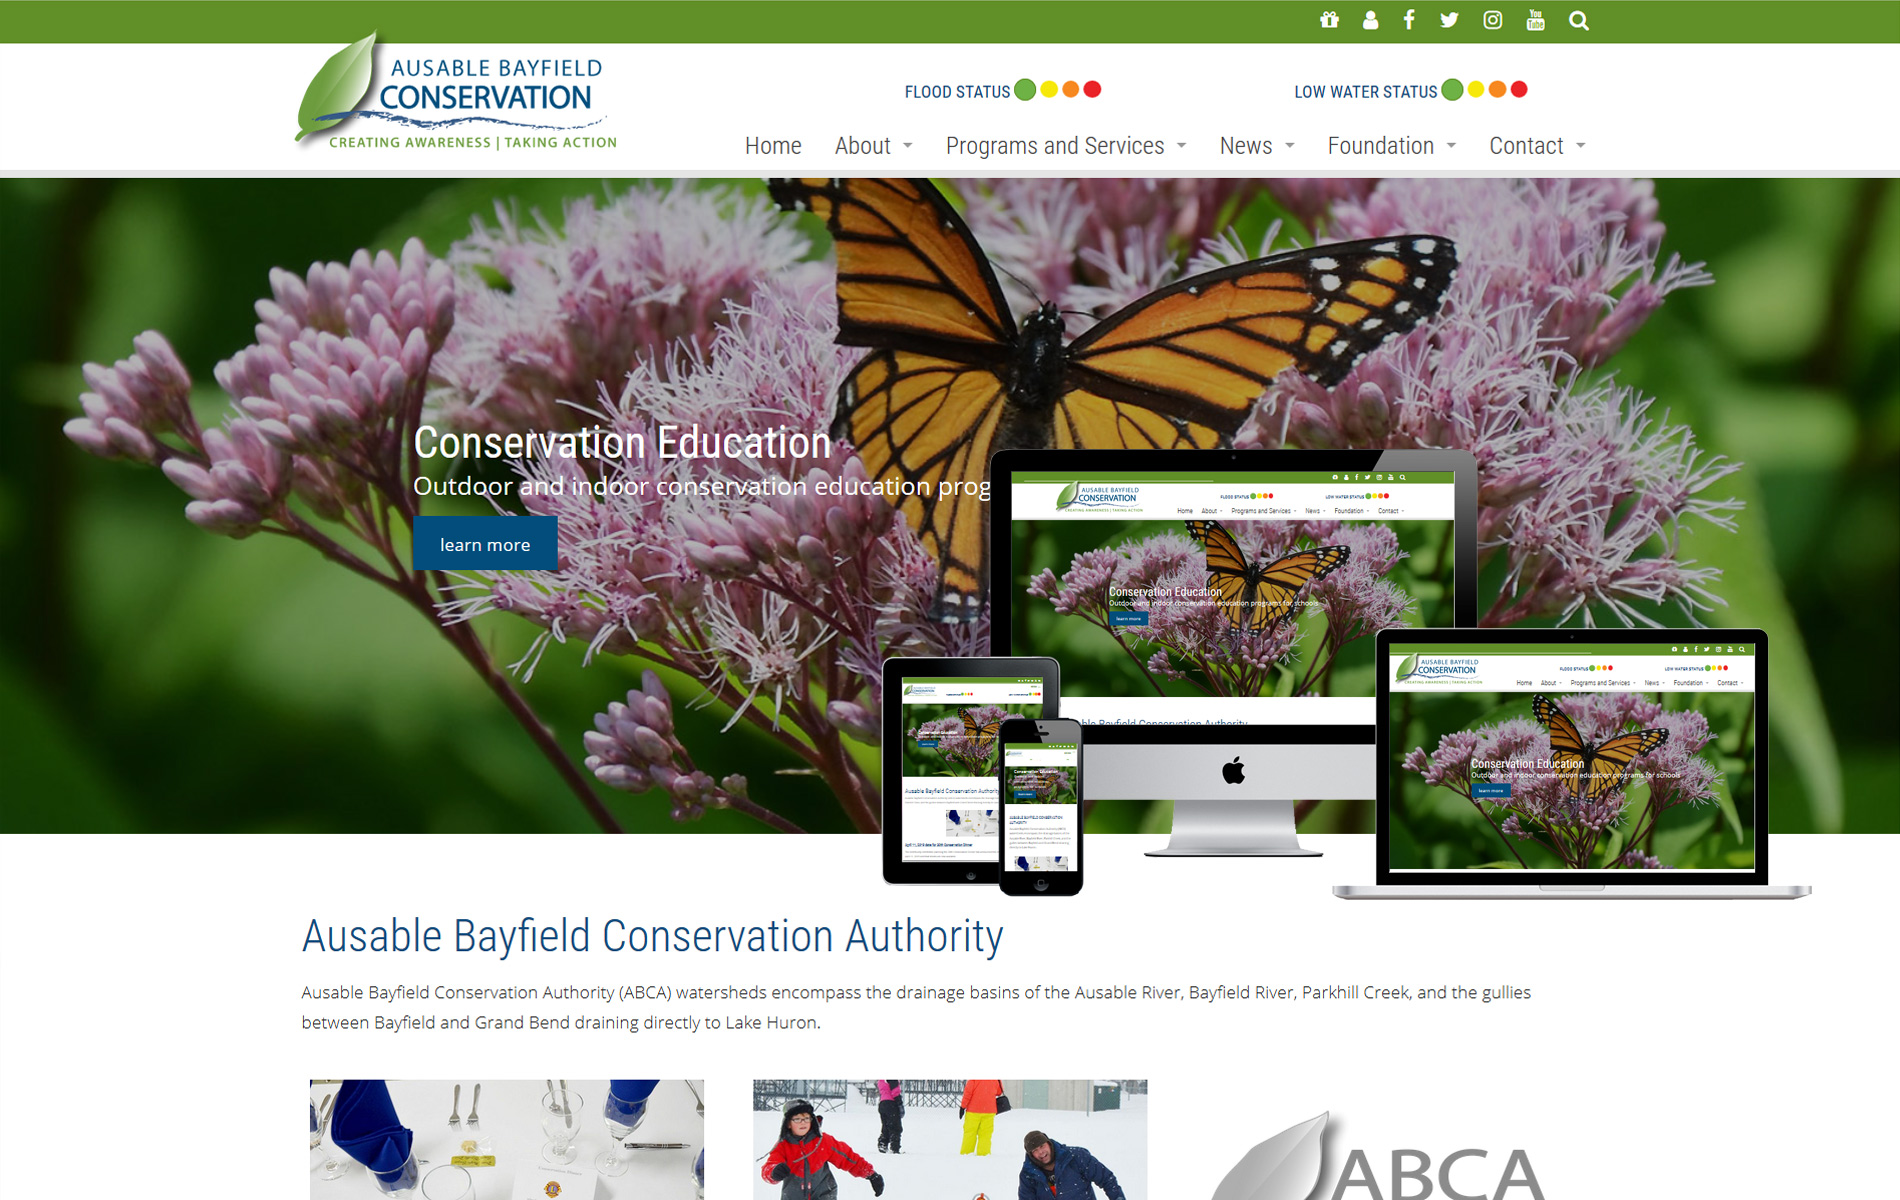 Ausable Bayfield Conservation Authority